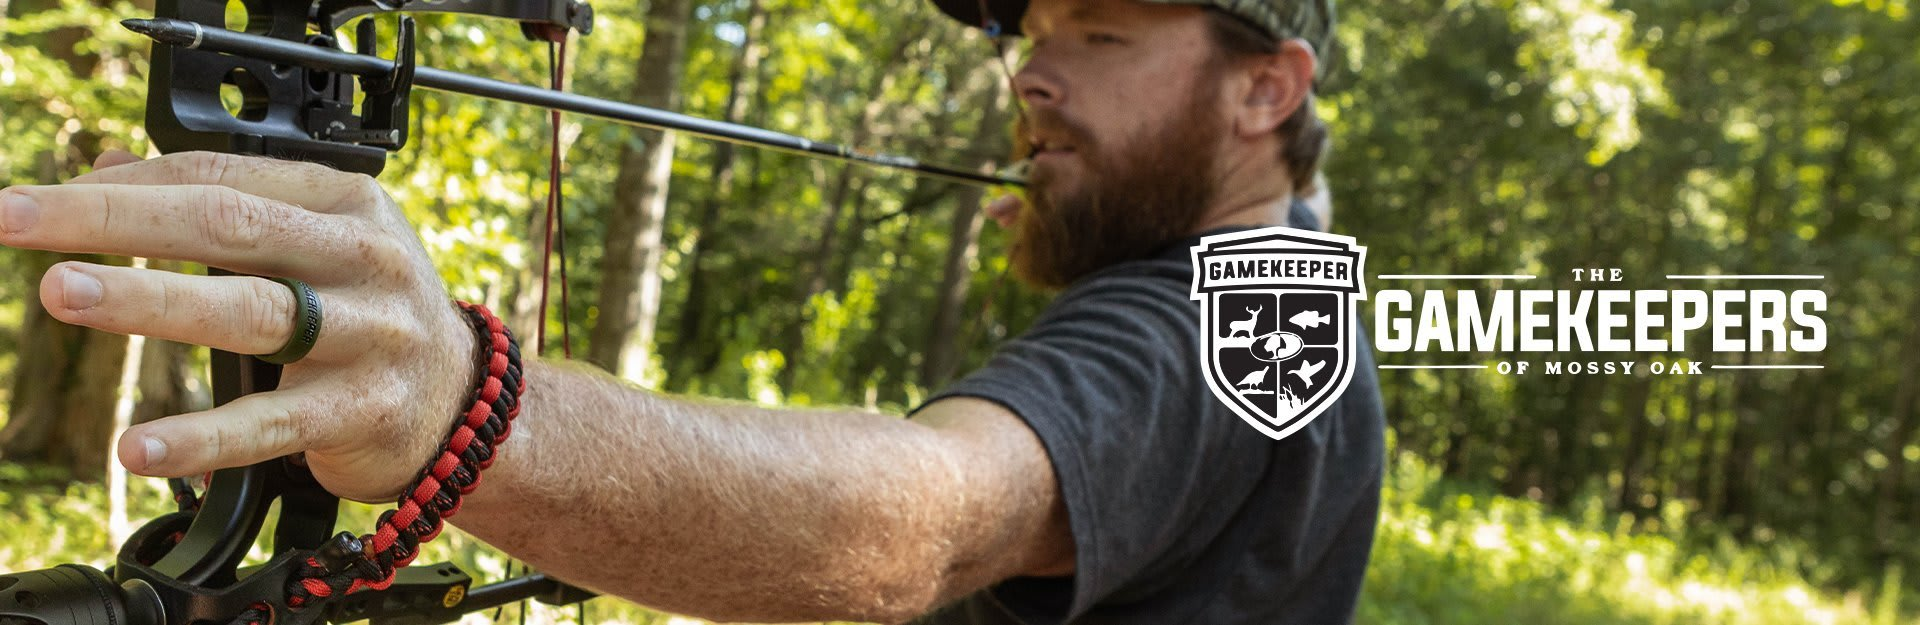 Mossy Oak Gamekeepers, a man draws his bow before shooting